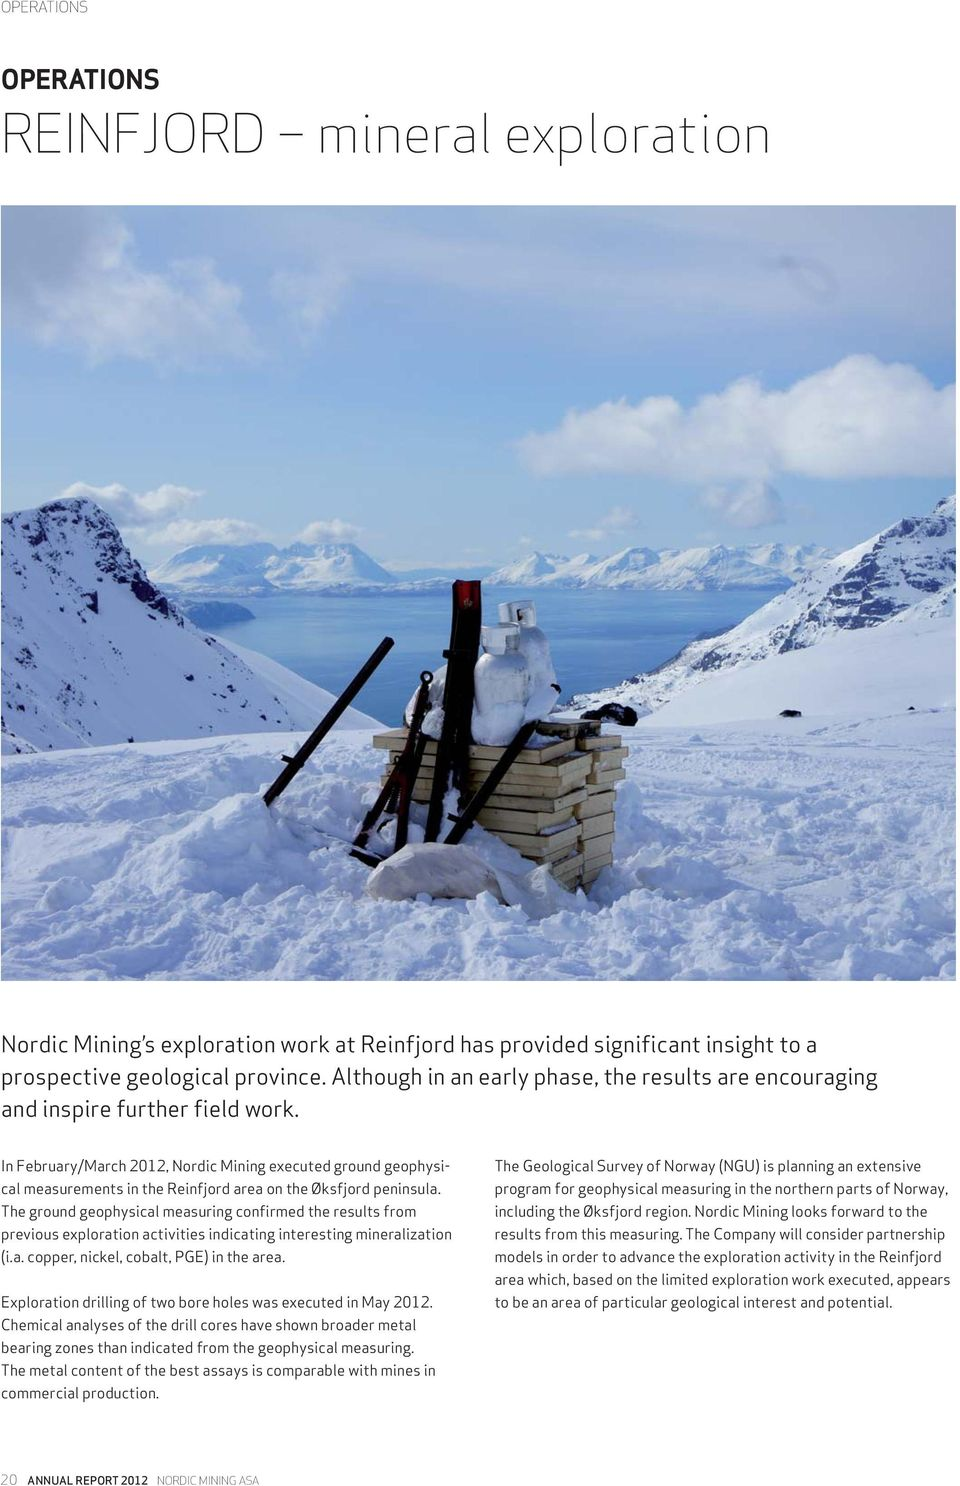 In February/March 2012, Nordic Mining executed ground geophysical measurements in the Reinfjord area on the Øksfjord peninsula.